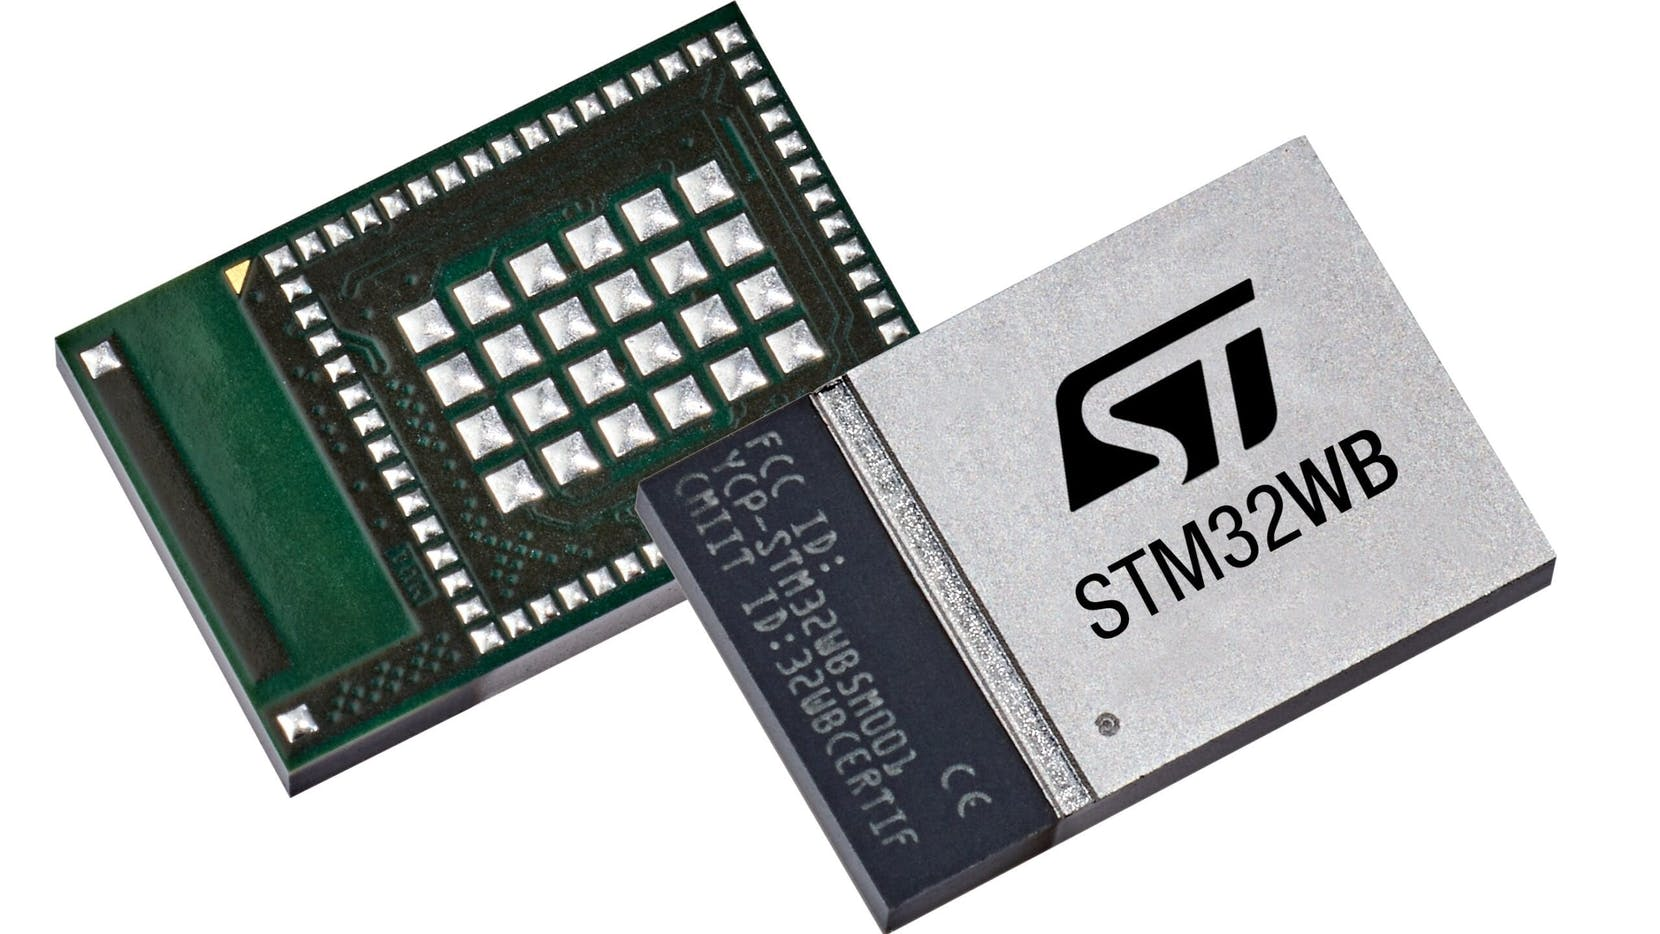 STM32WB5MMG Wireless Module supports Bluetooth LE, Zigbee, OpenThread, and More